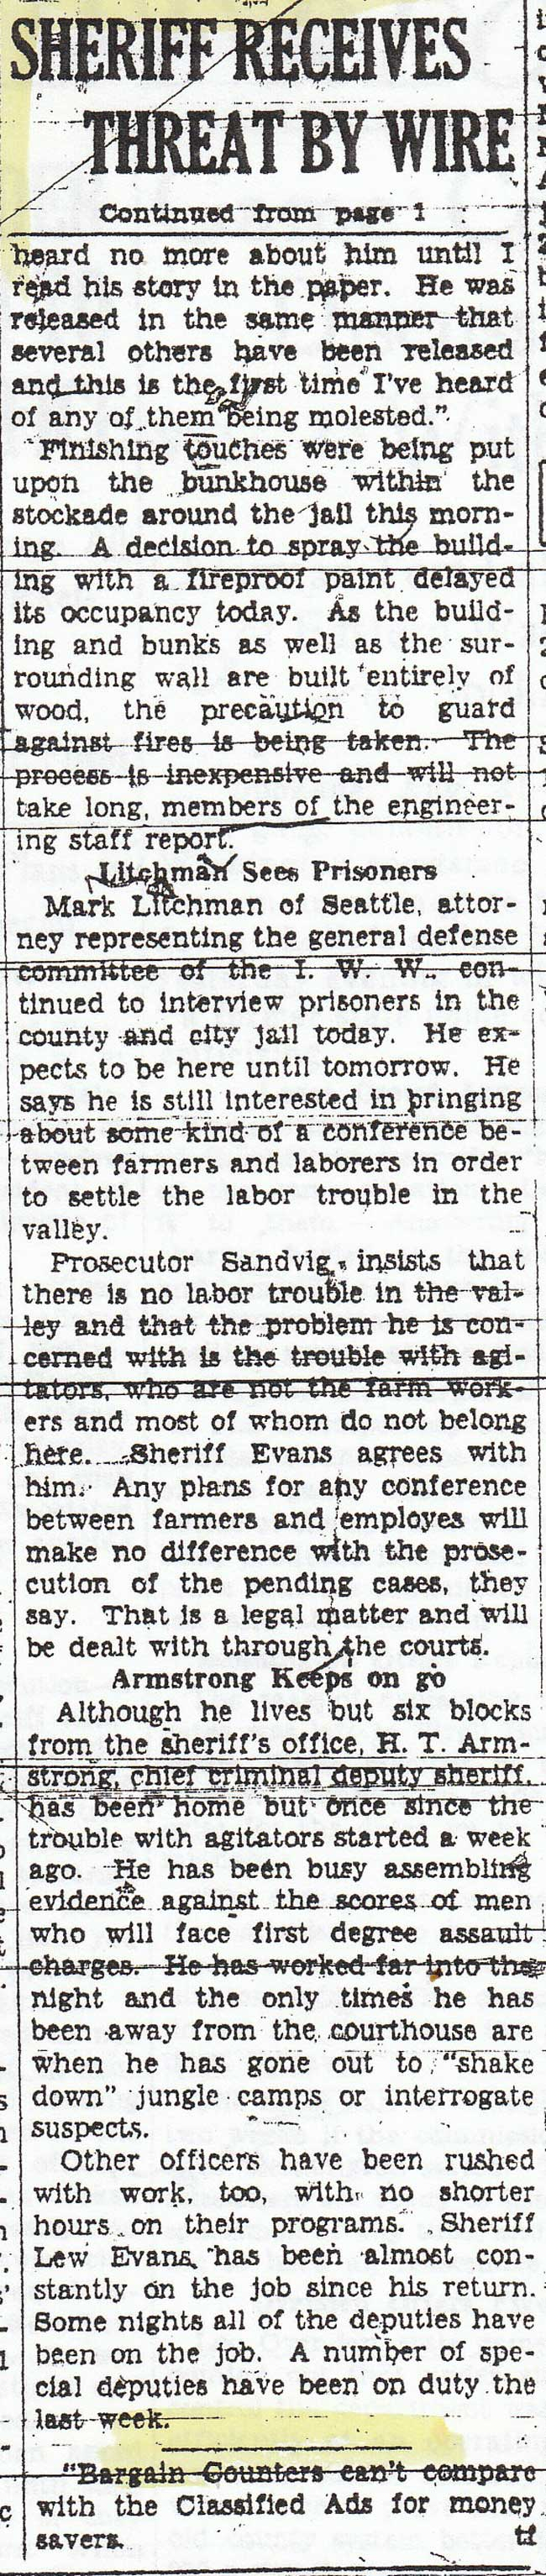 News coverage Farm Workers